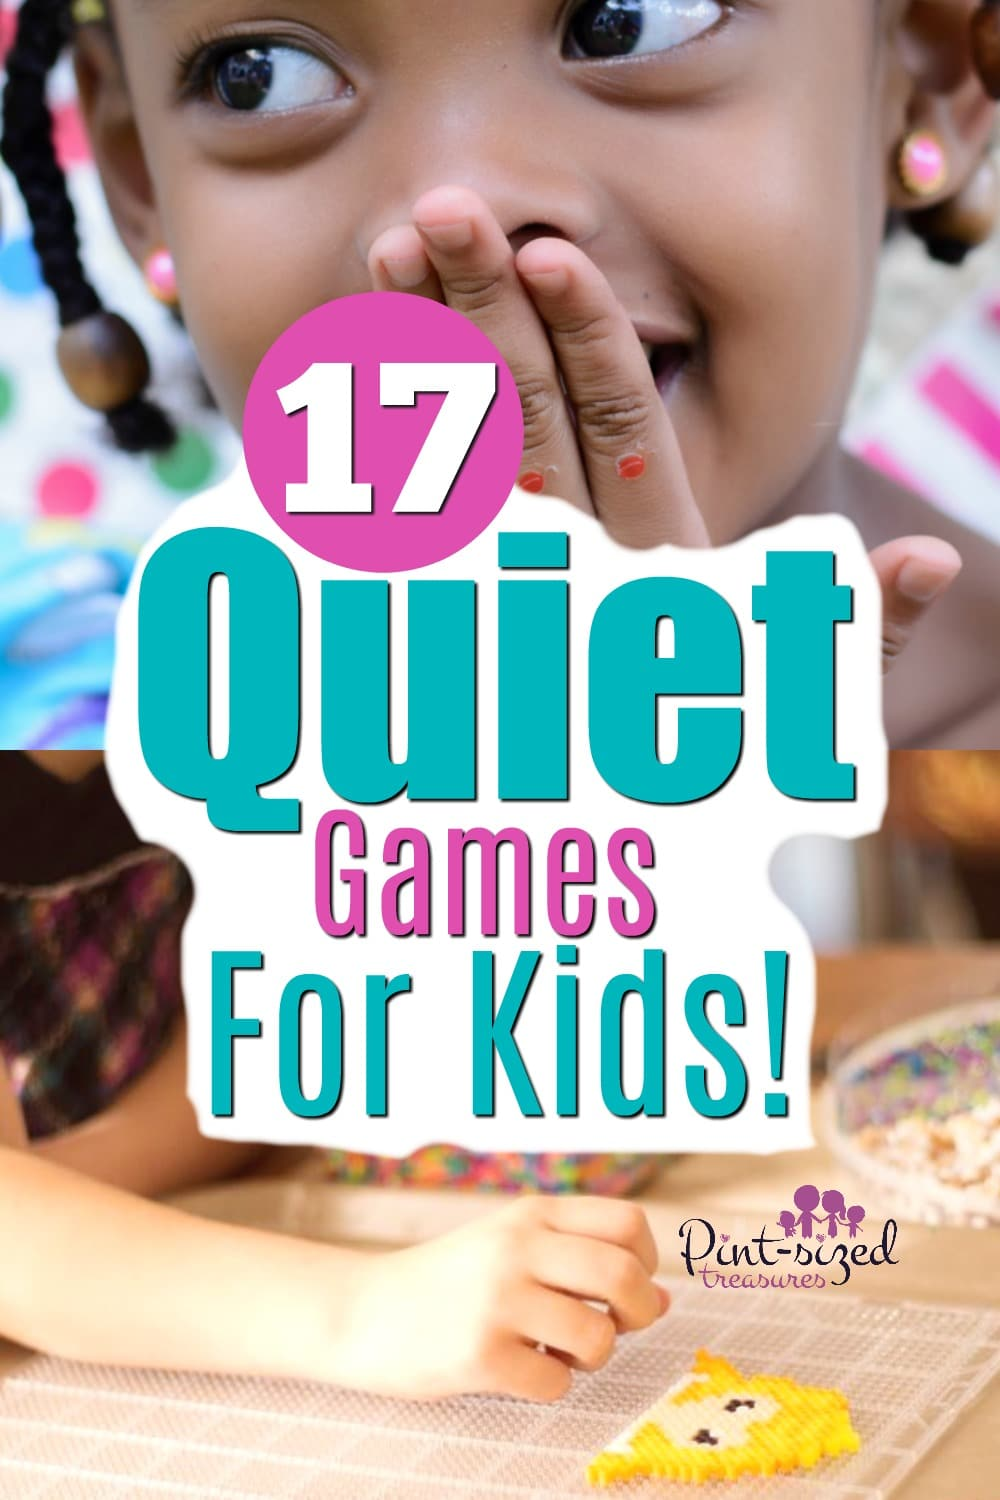 50 Fun Games to Play with Friends - Kid Activities